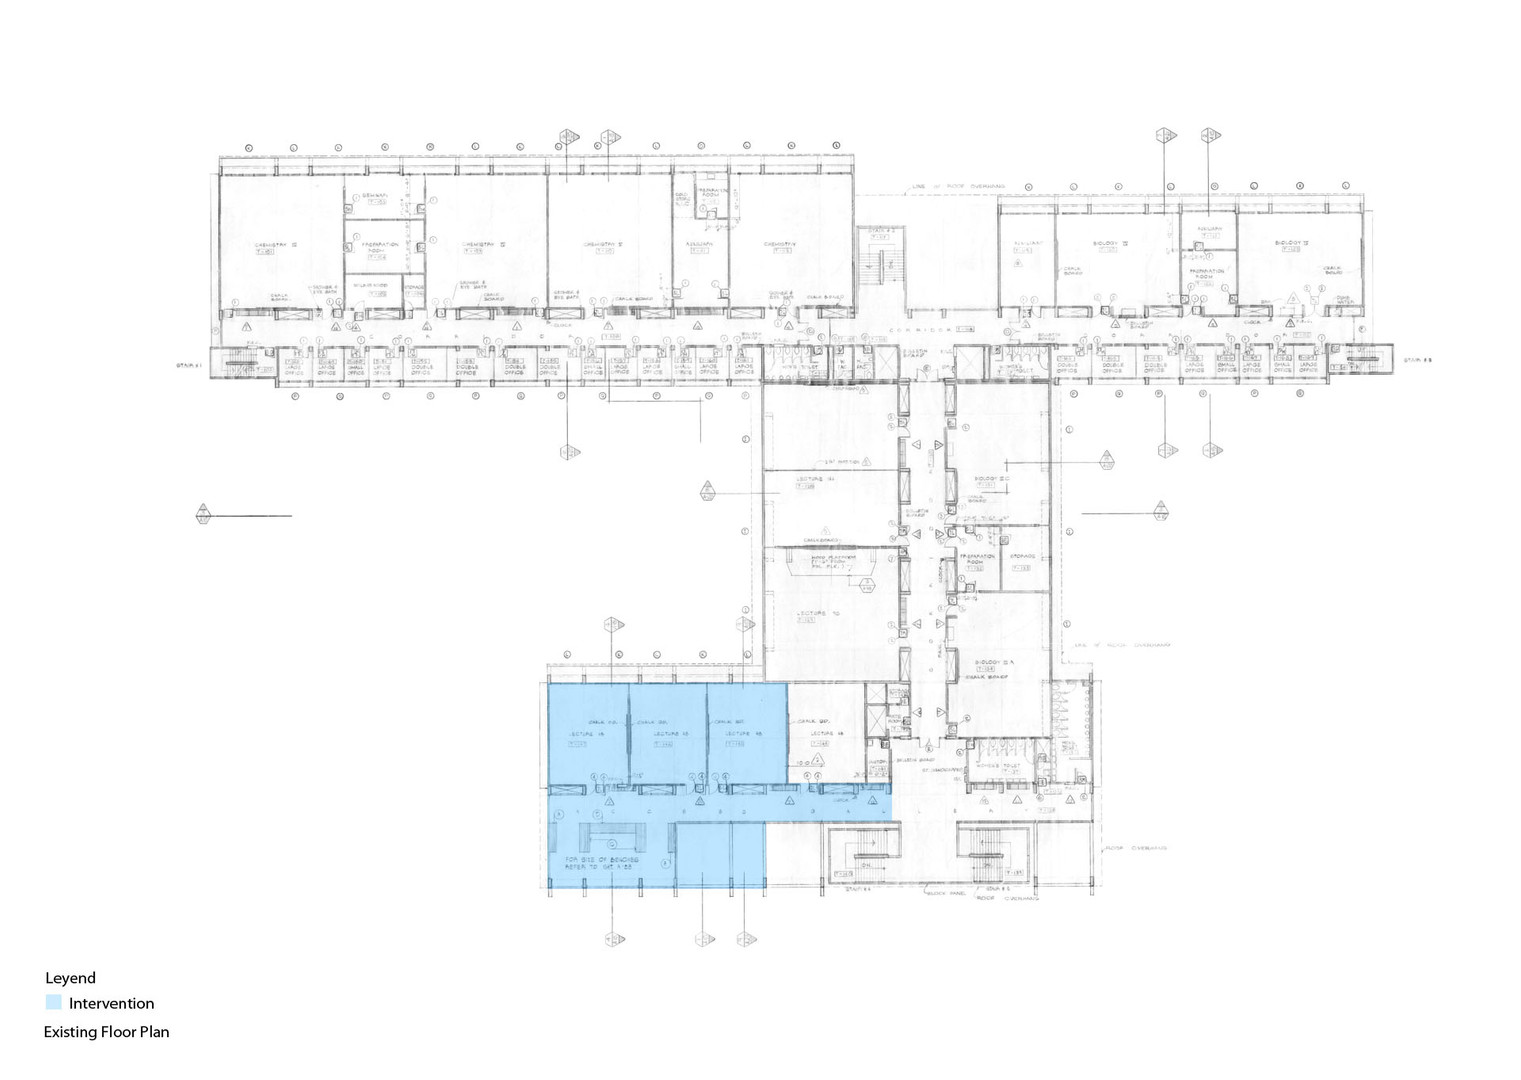 Existing Floor Plan and Intervention